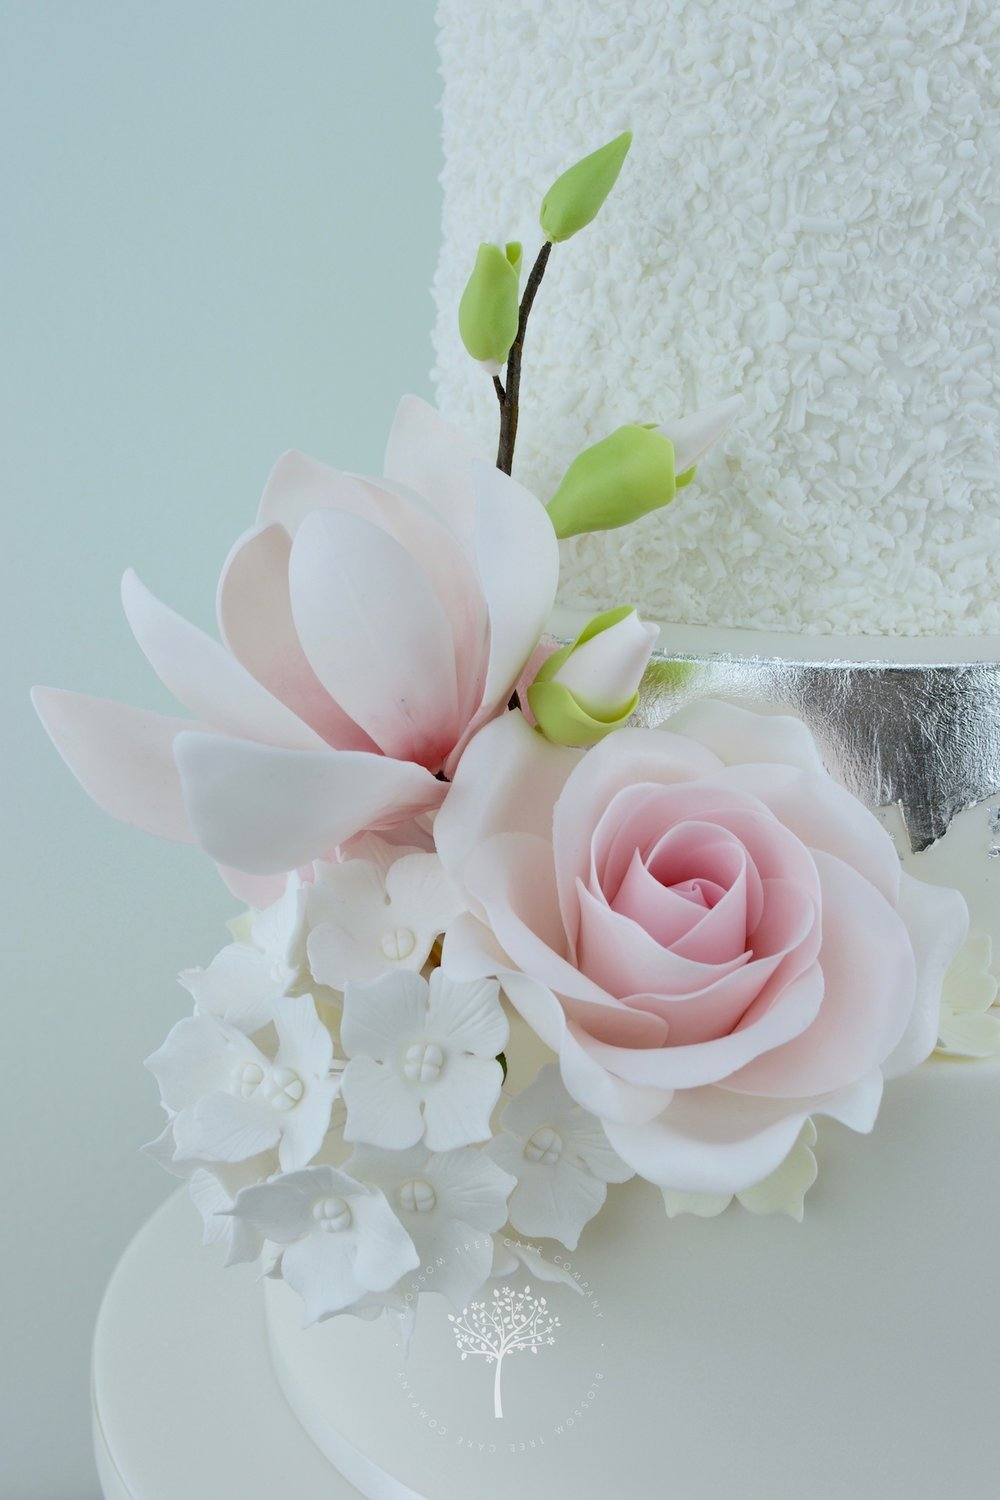 Magnolia Roses and Peony wedding cake by Blossom Tree Cake Company Harrogate North Yorkshire - sugar flowers.jpg